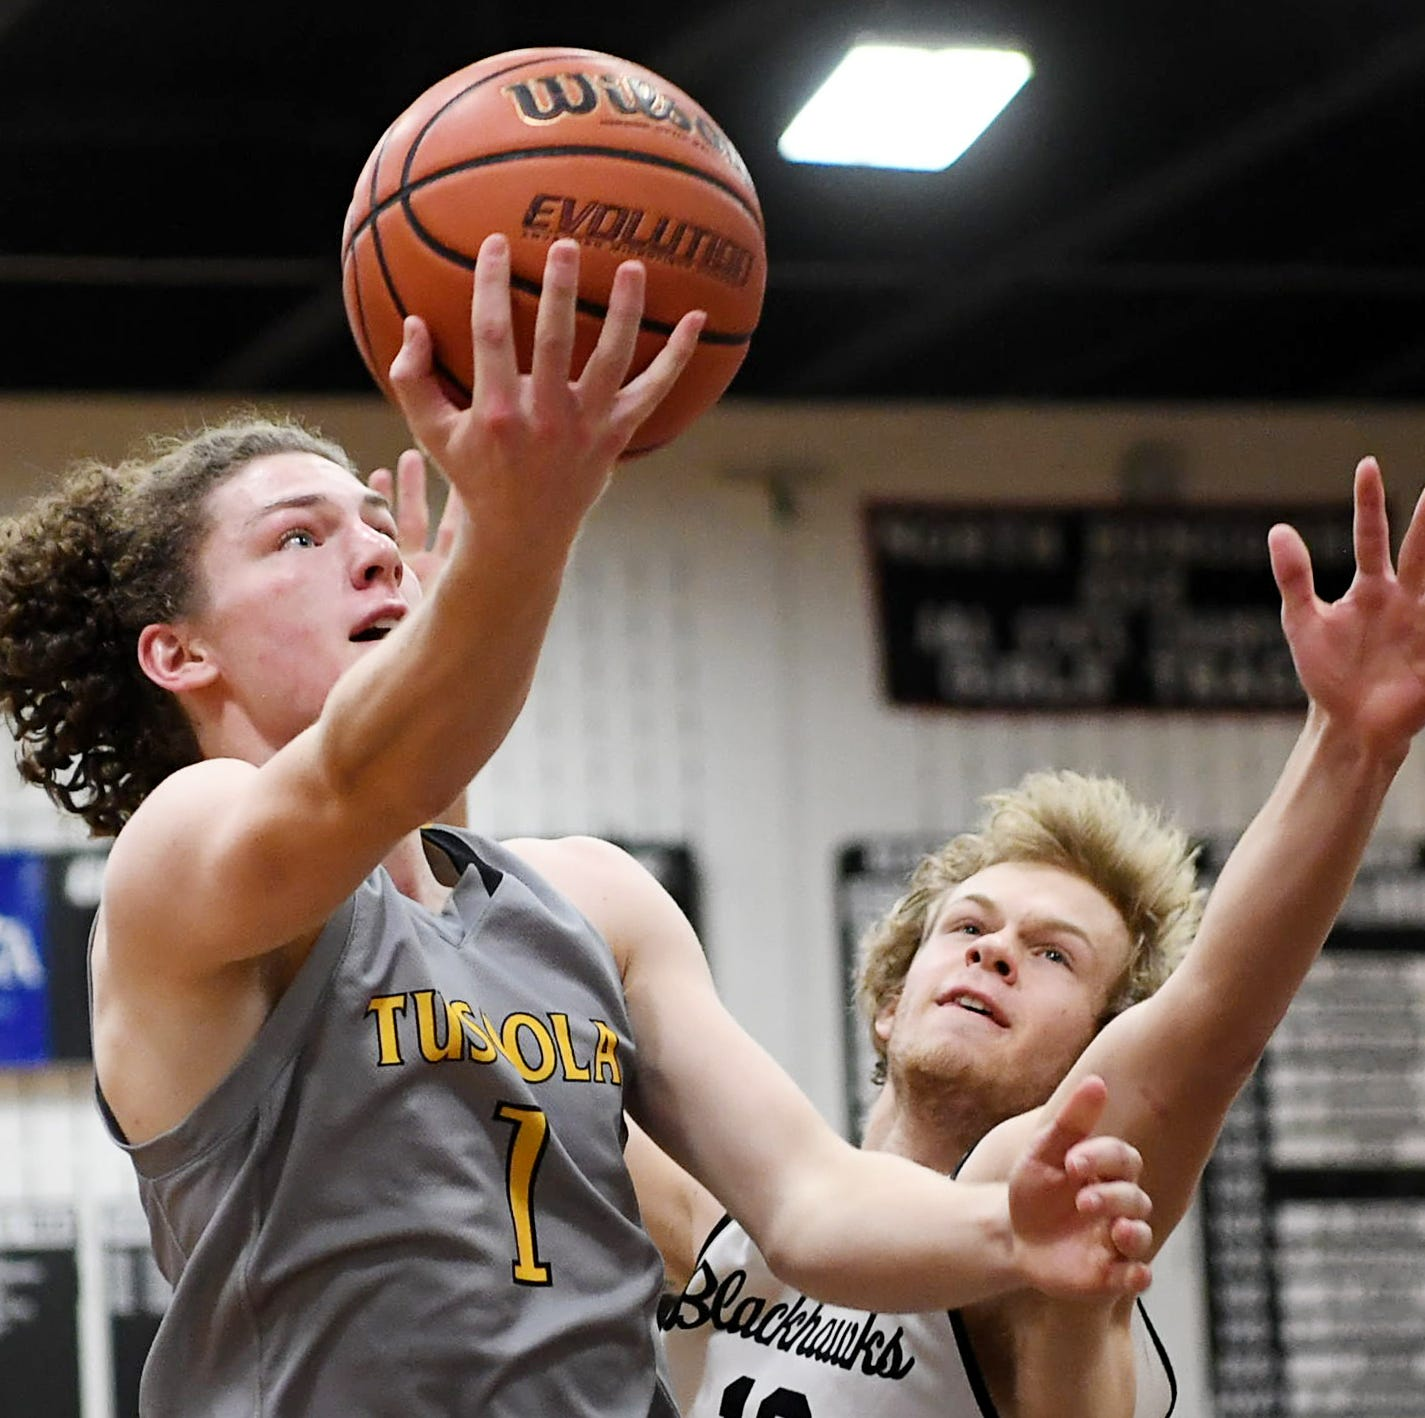 WNC high school basketball: Conference tournament schedule